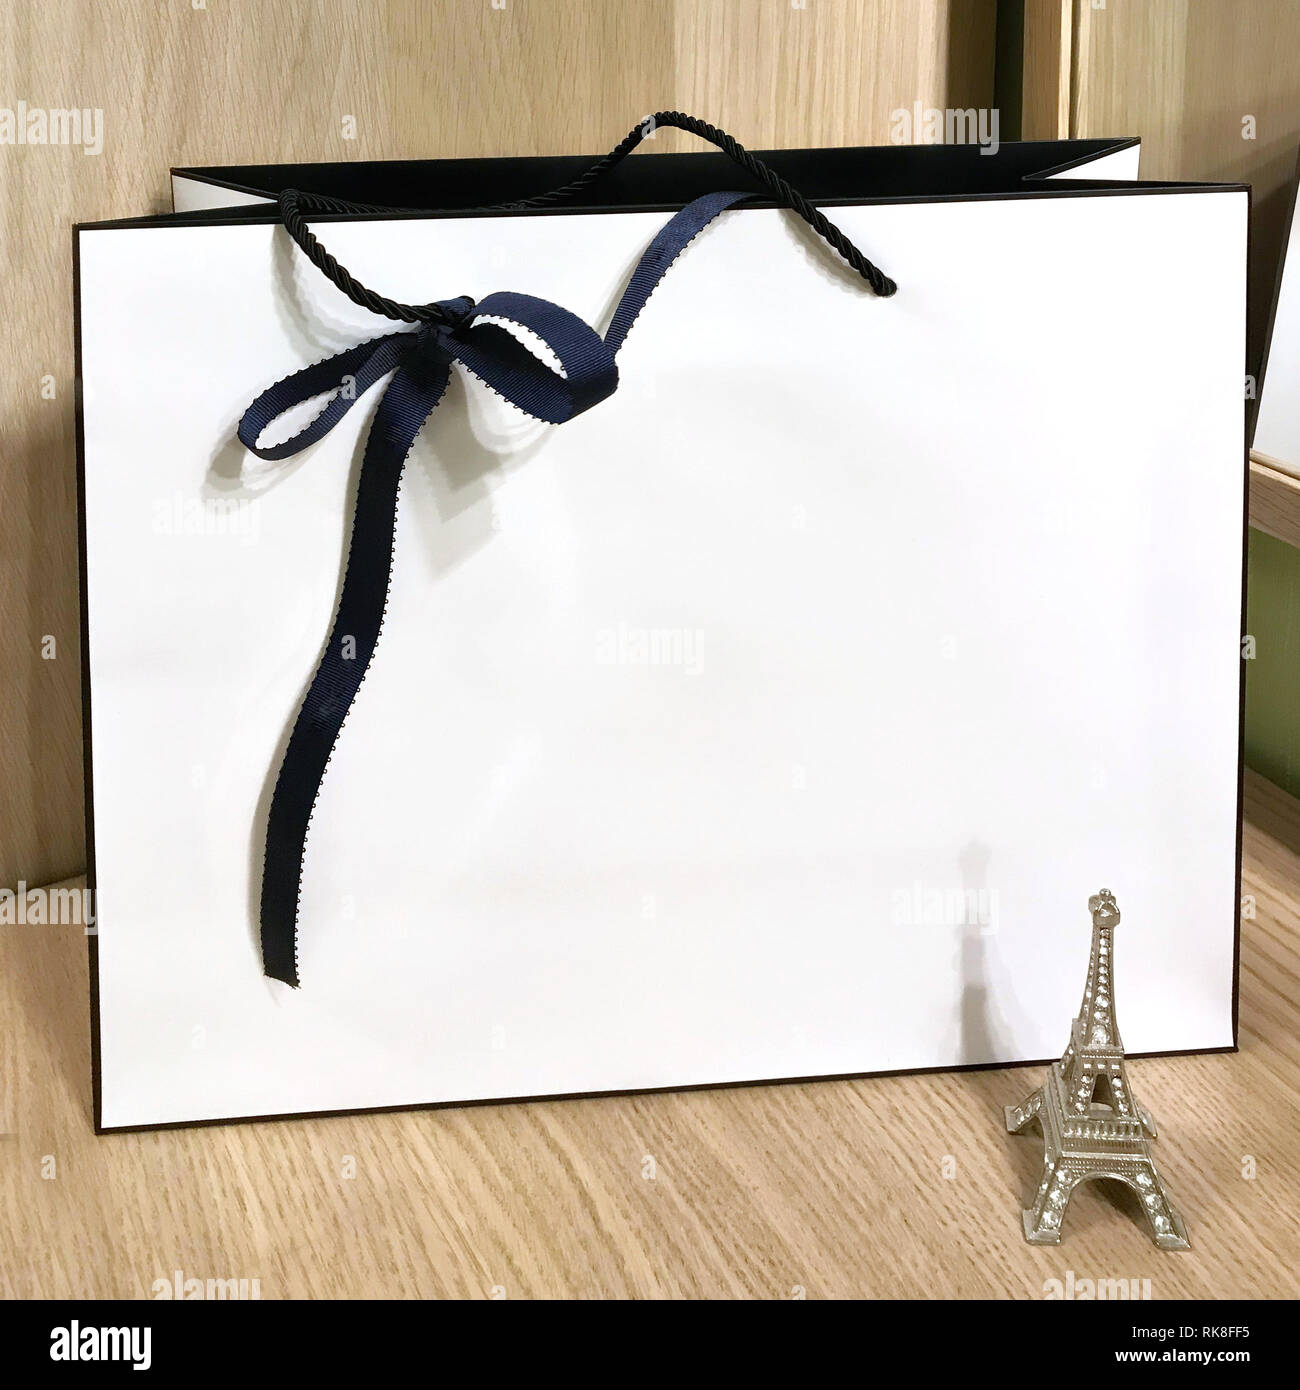 White rectangular bag with handles of black braid and a dark bow. - Stock Image